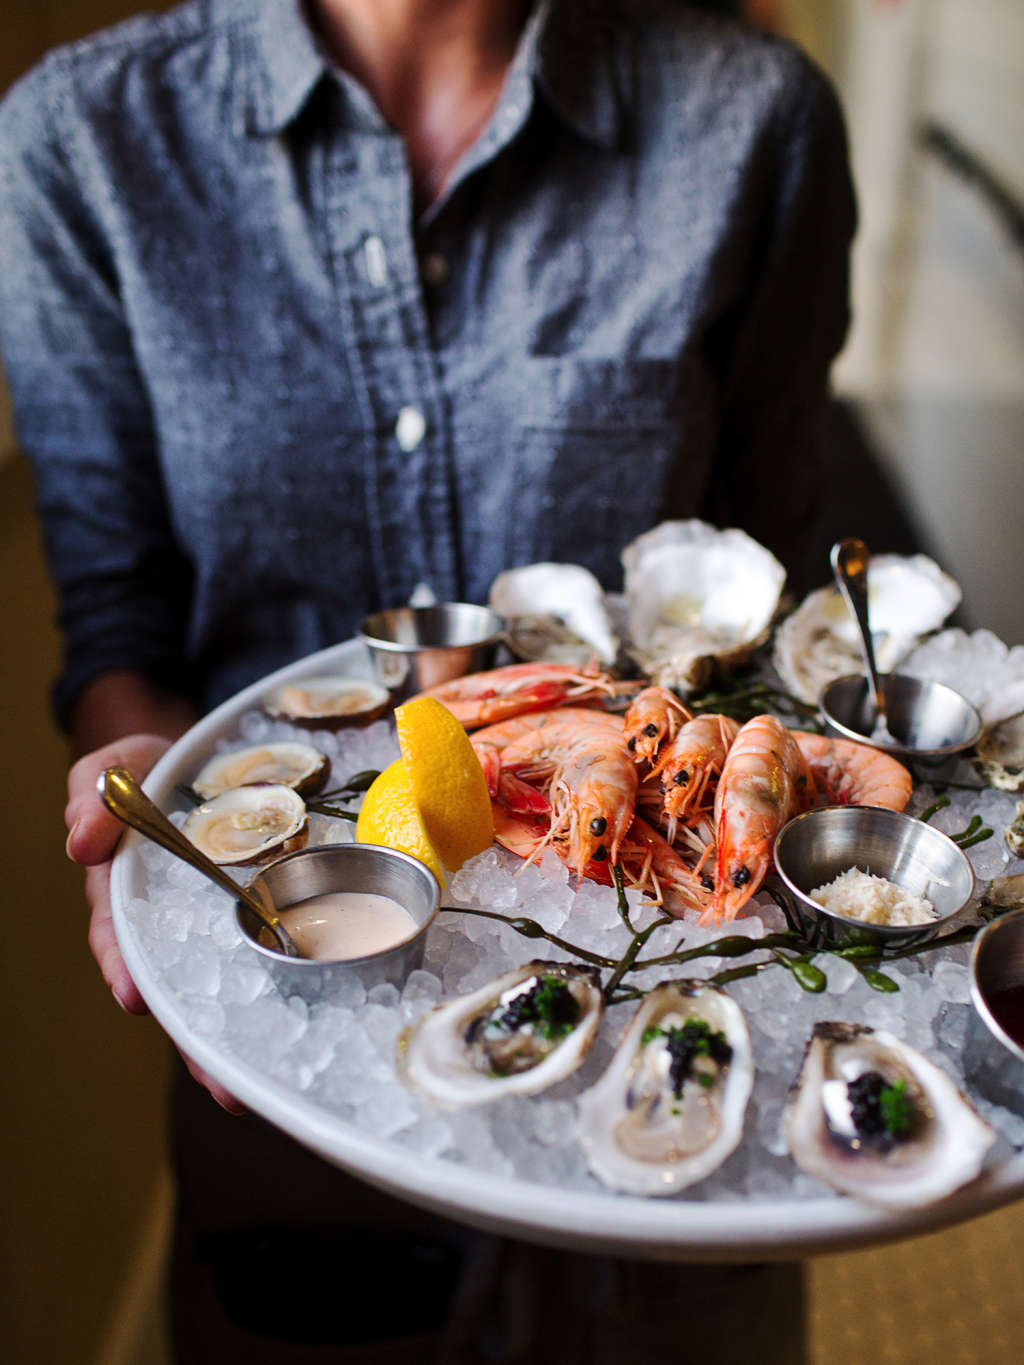 5 Great Cities for Food-Lovers